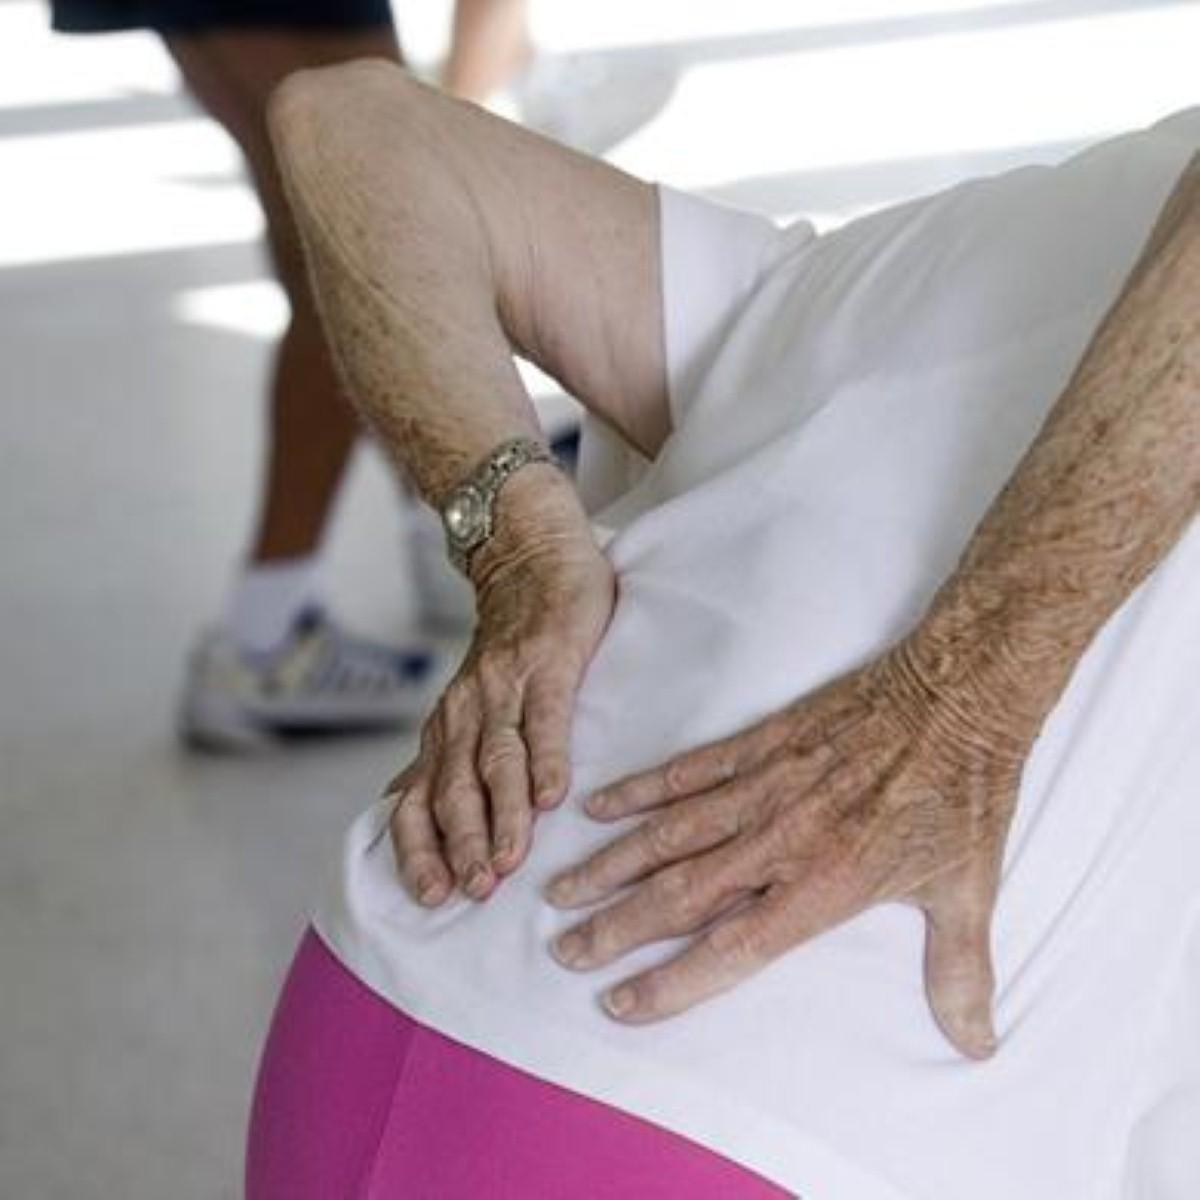 Government 'should help chronic pain sufferers'